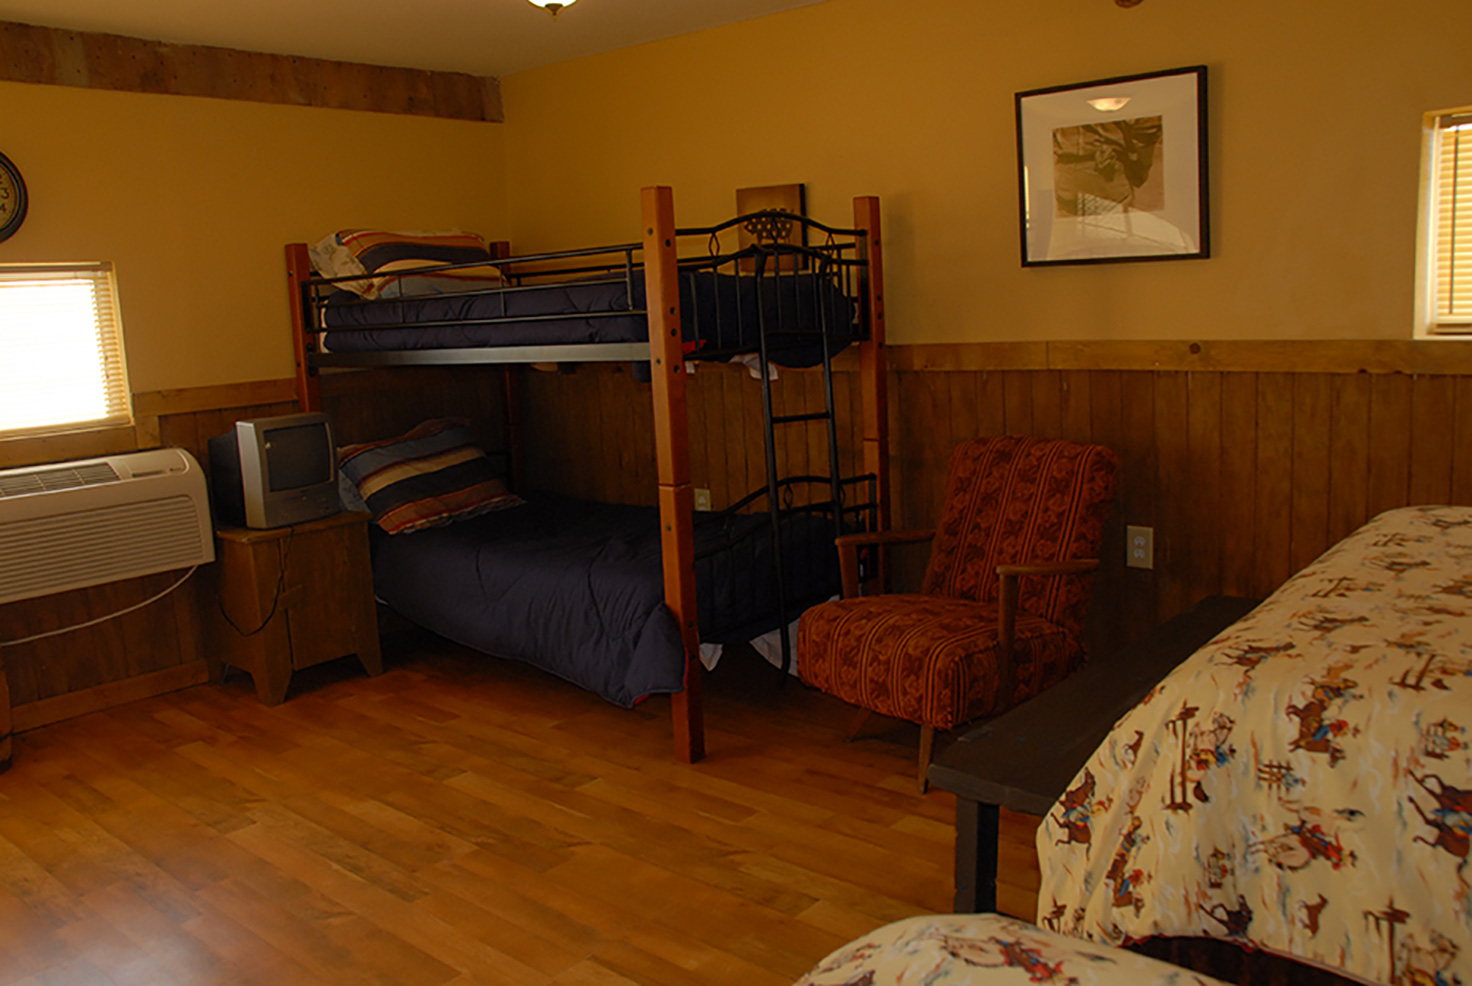 Bunk beds in a room